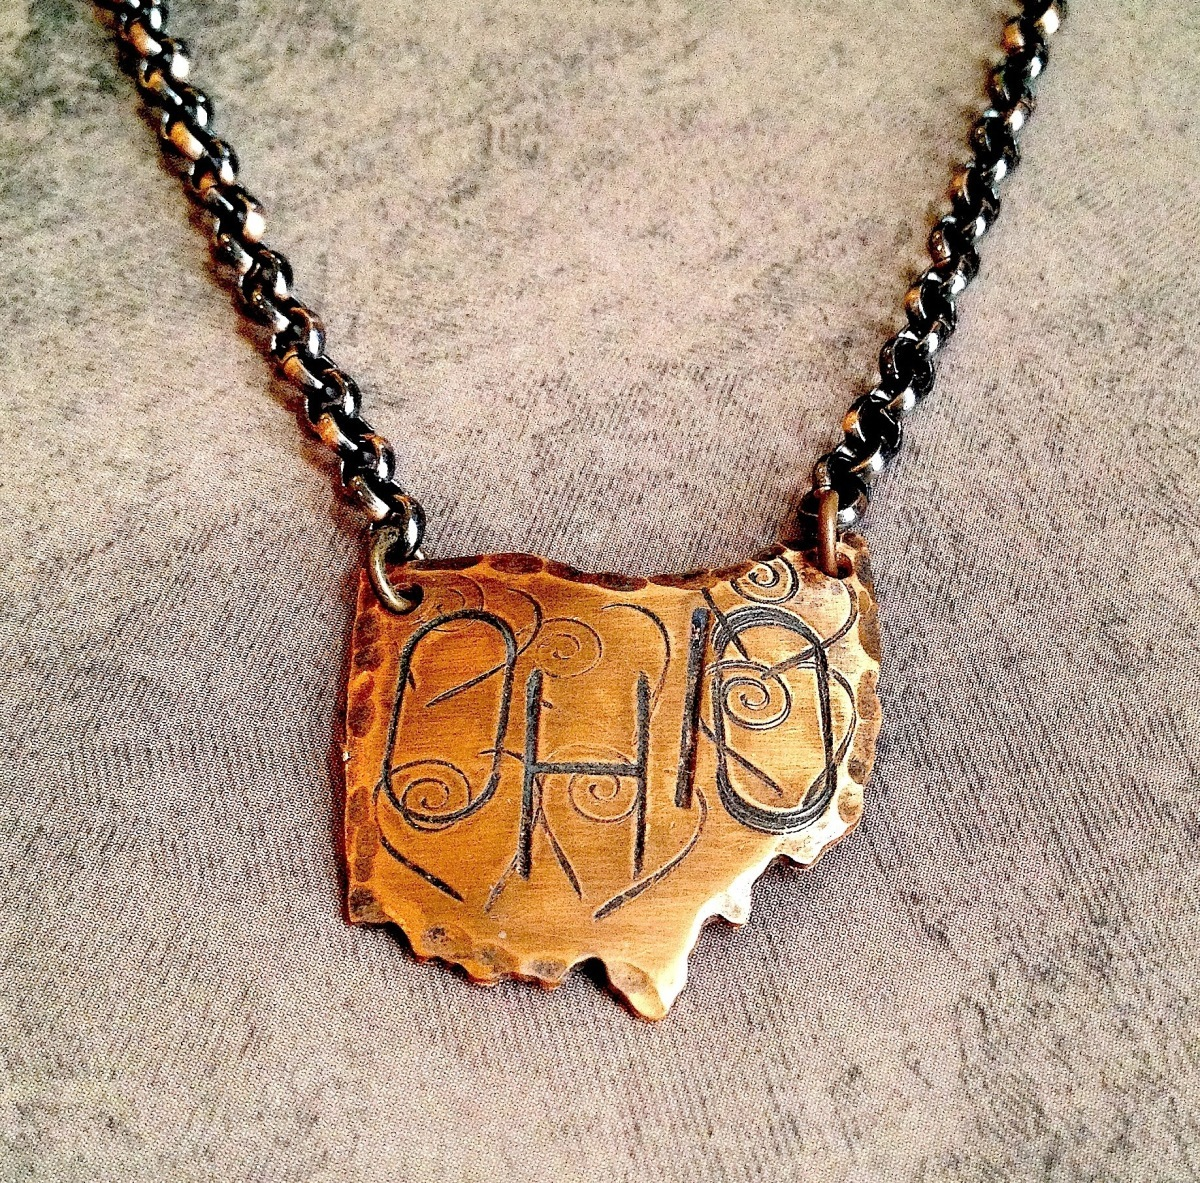 Ohio Necklace 4 (large view)